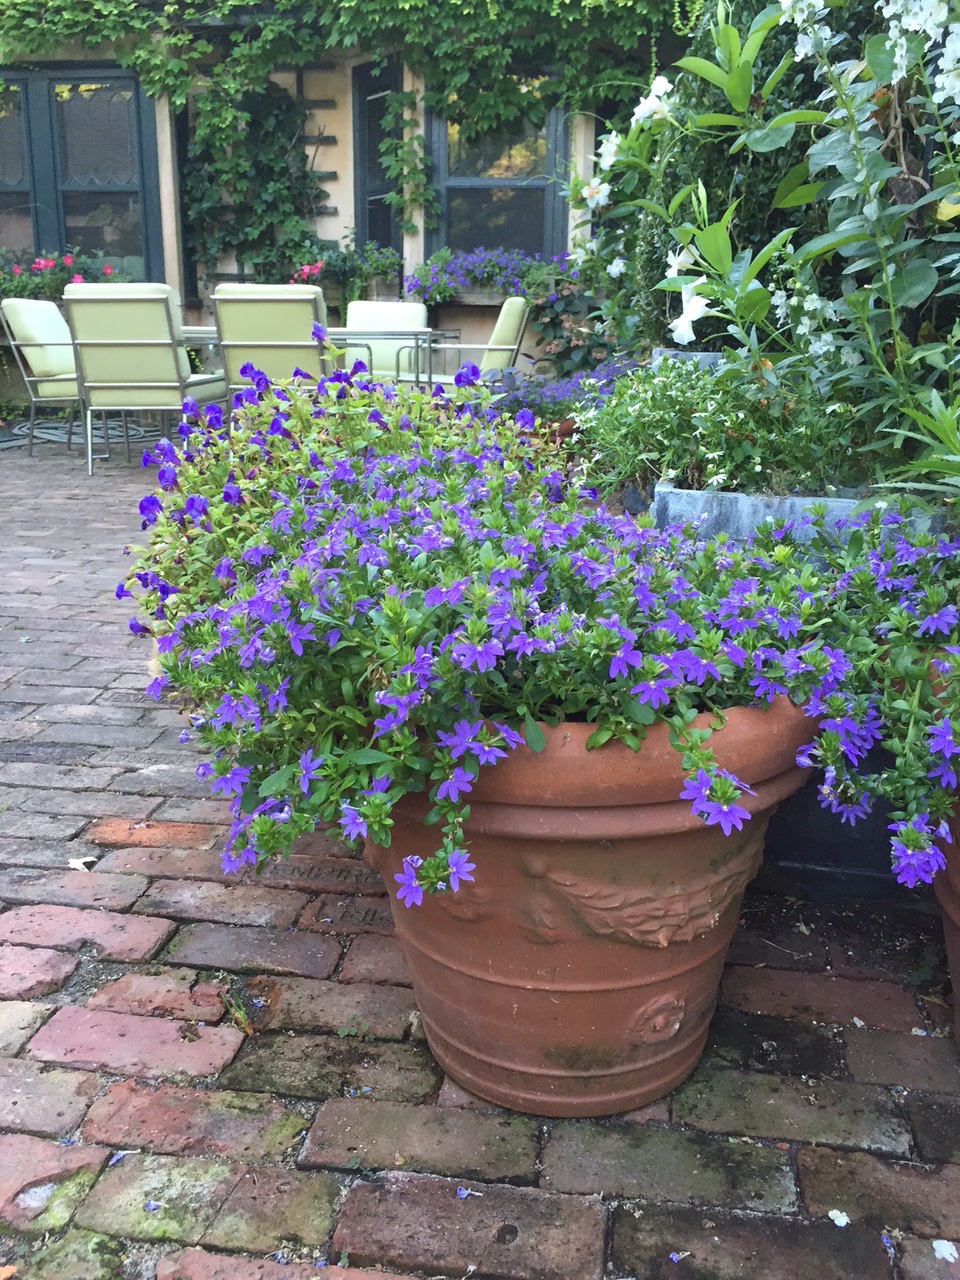 All corners of the property are considered, with blooming flowers and vines abound. Martha is a huge proponent of planting in pots: this terra cotta pot is planted with Torenia and Scaevola, two gorgeous purple annuals that are not too fussy, are pretty drought tolerant,  and their flowers just so bright.